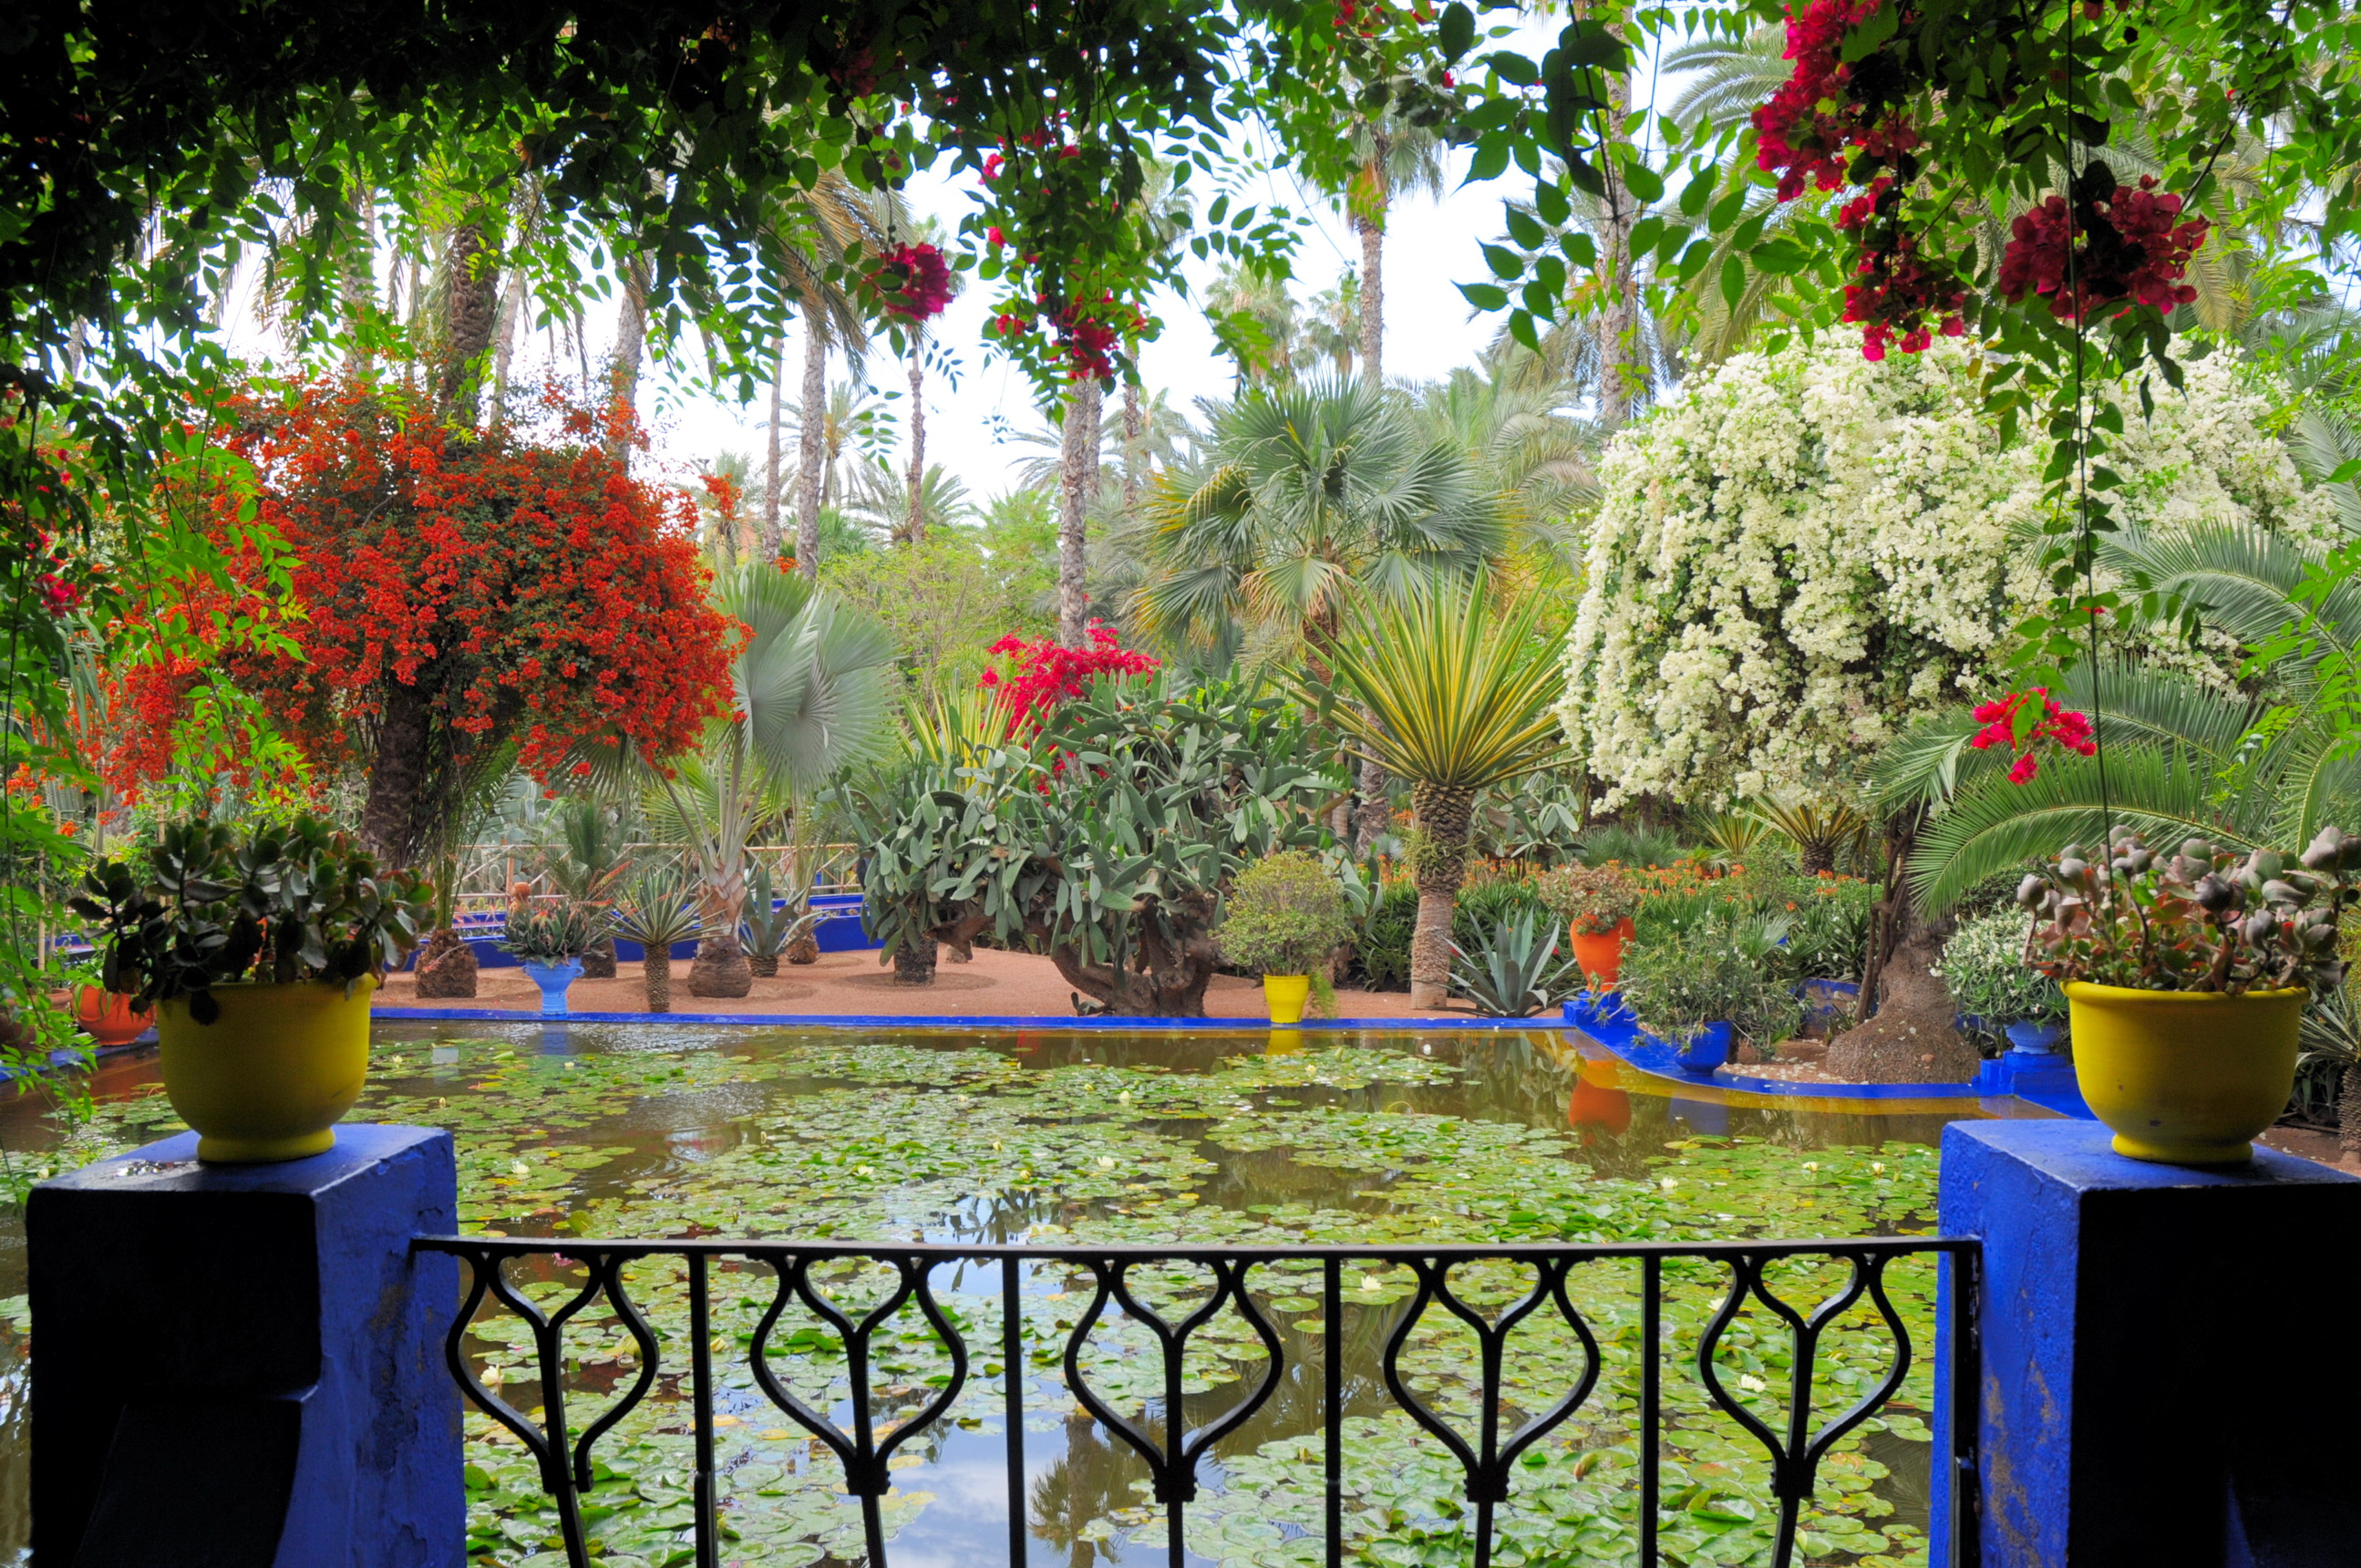 Morocco marrakech jardin majorelle full hd fond d 39 cran for Jardin ysl marrakech